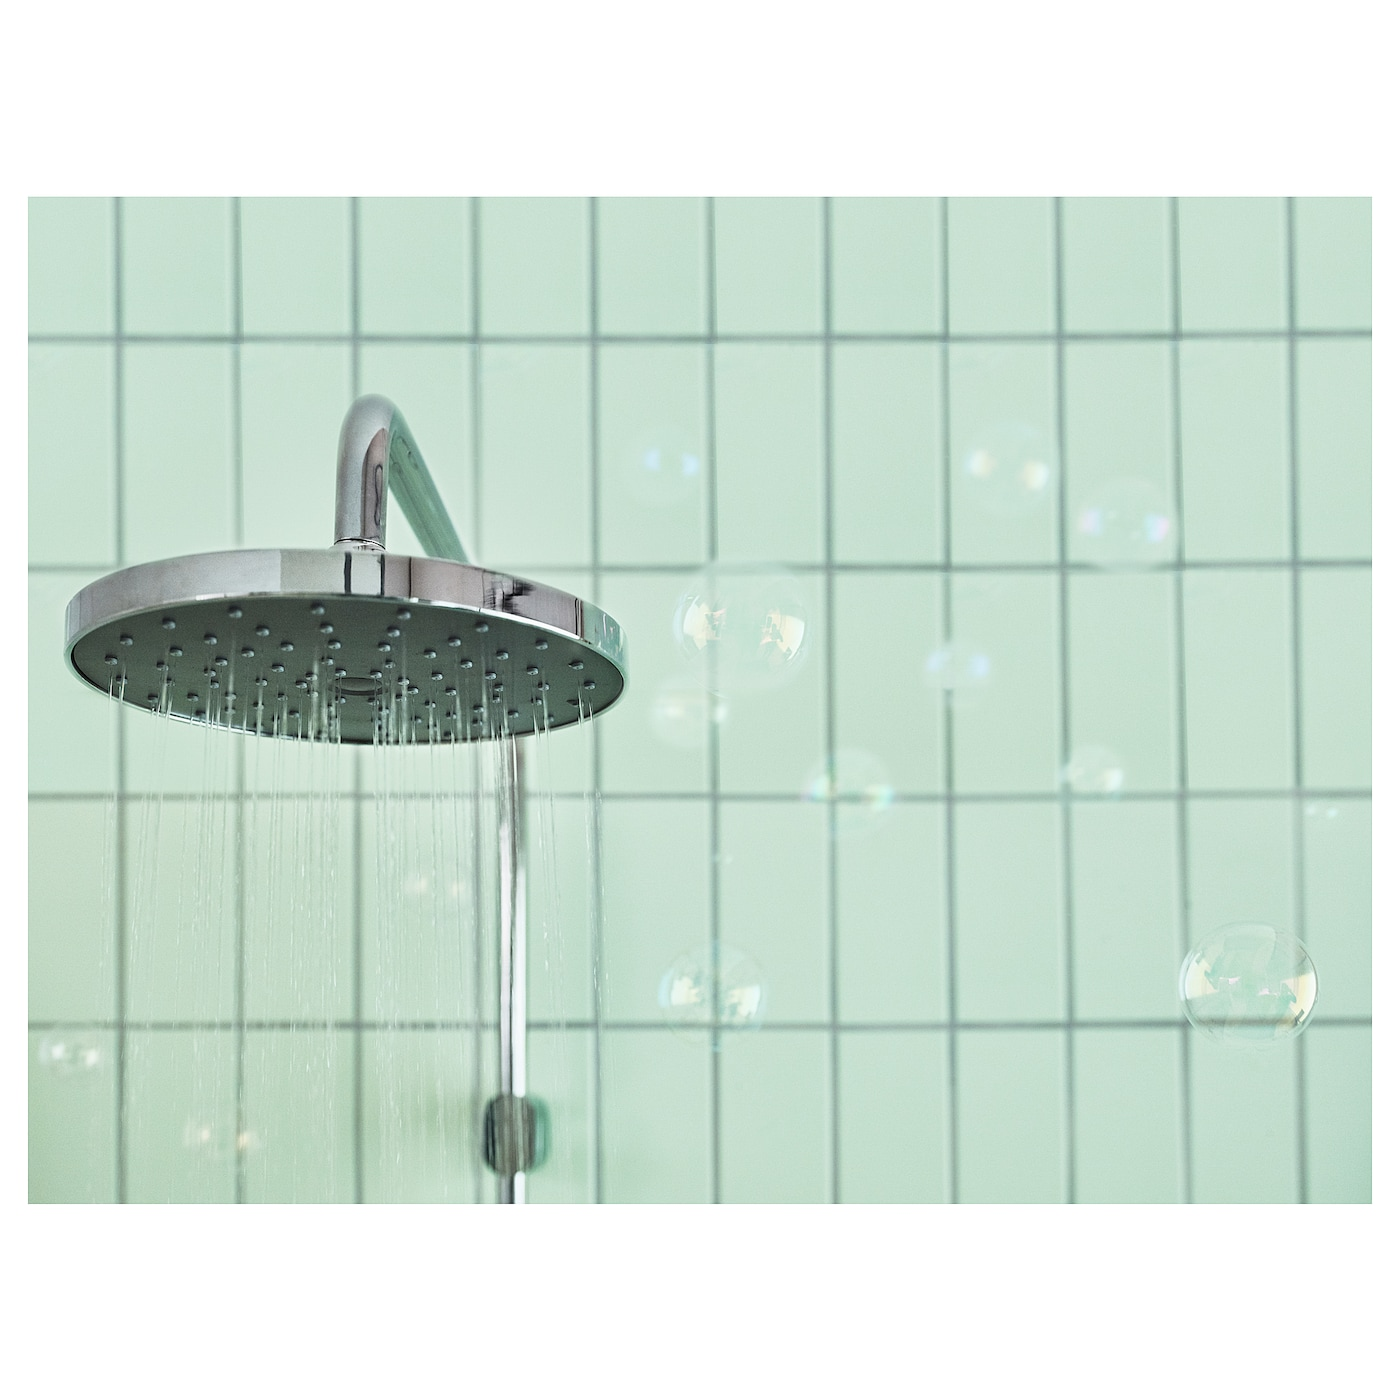 IKEA BROGRUND head/handshower kit with diverter